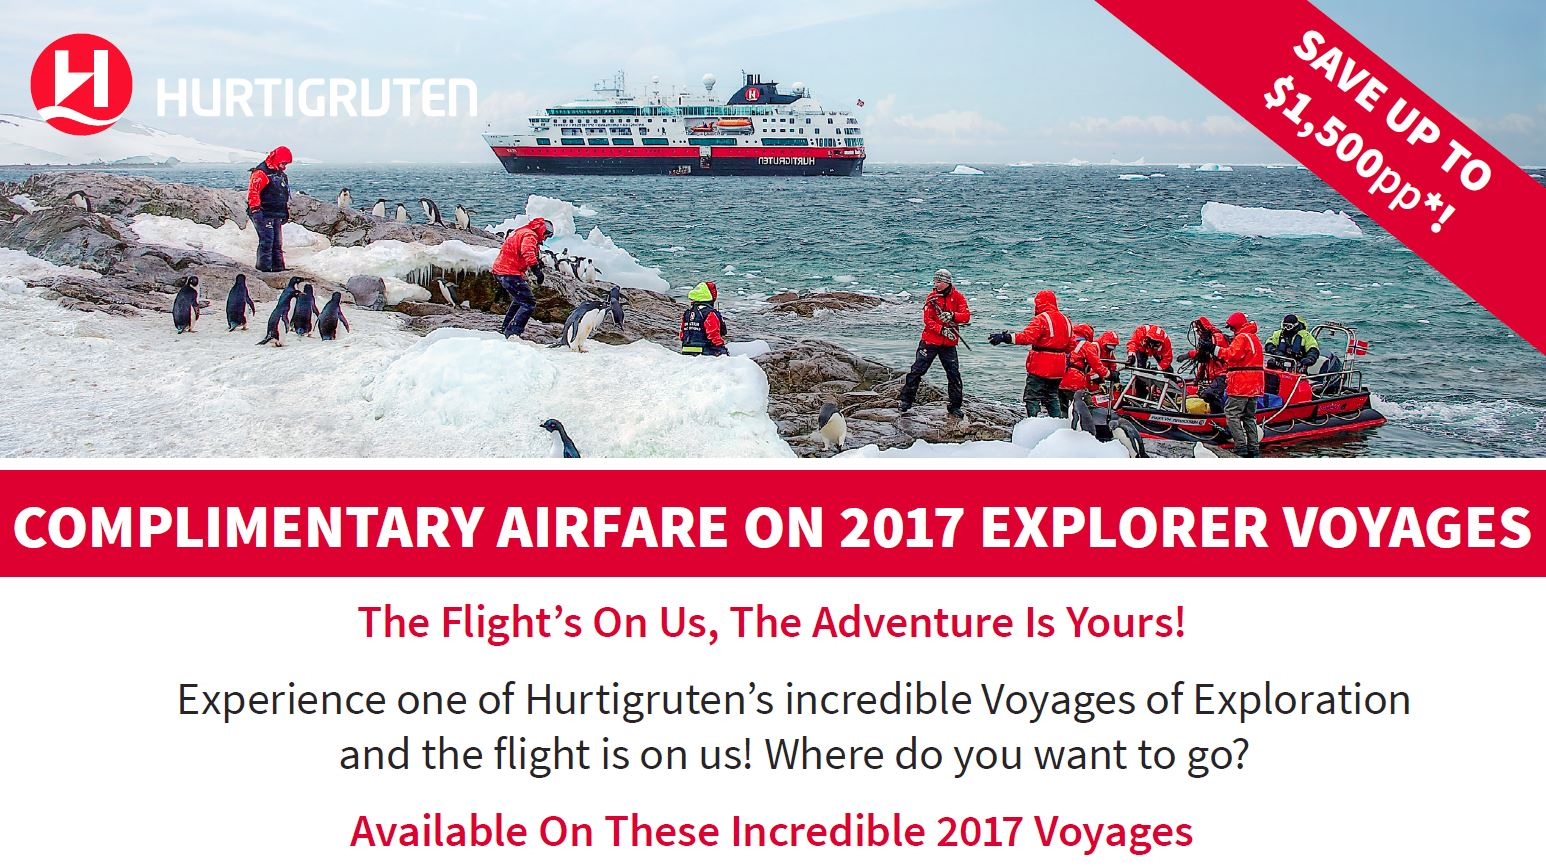 COMPLIMENTARY AIRFARE ON 2017 EXPLORER VOYAGES